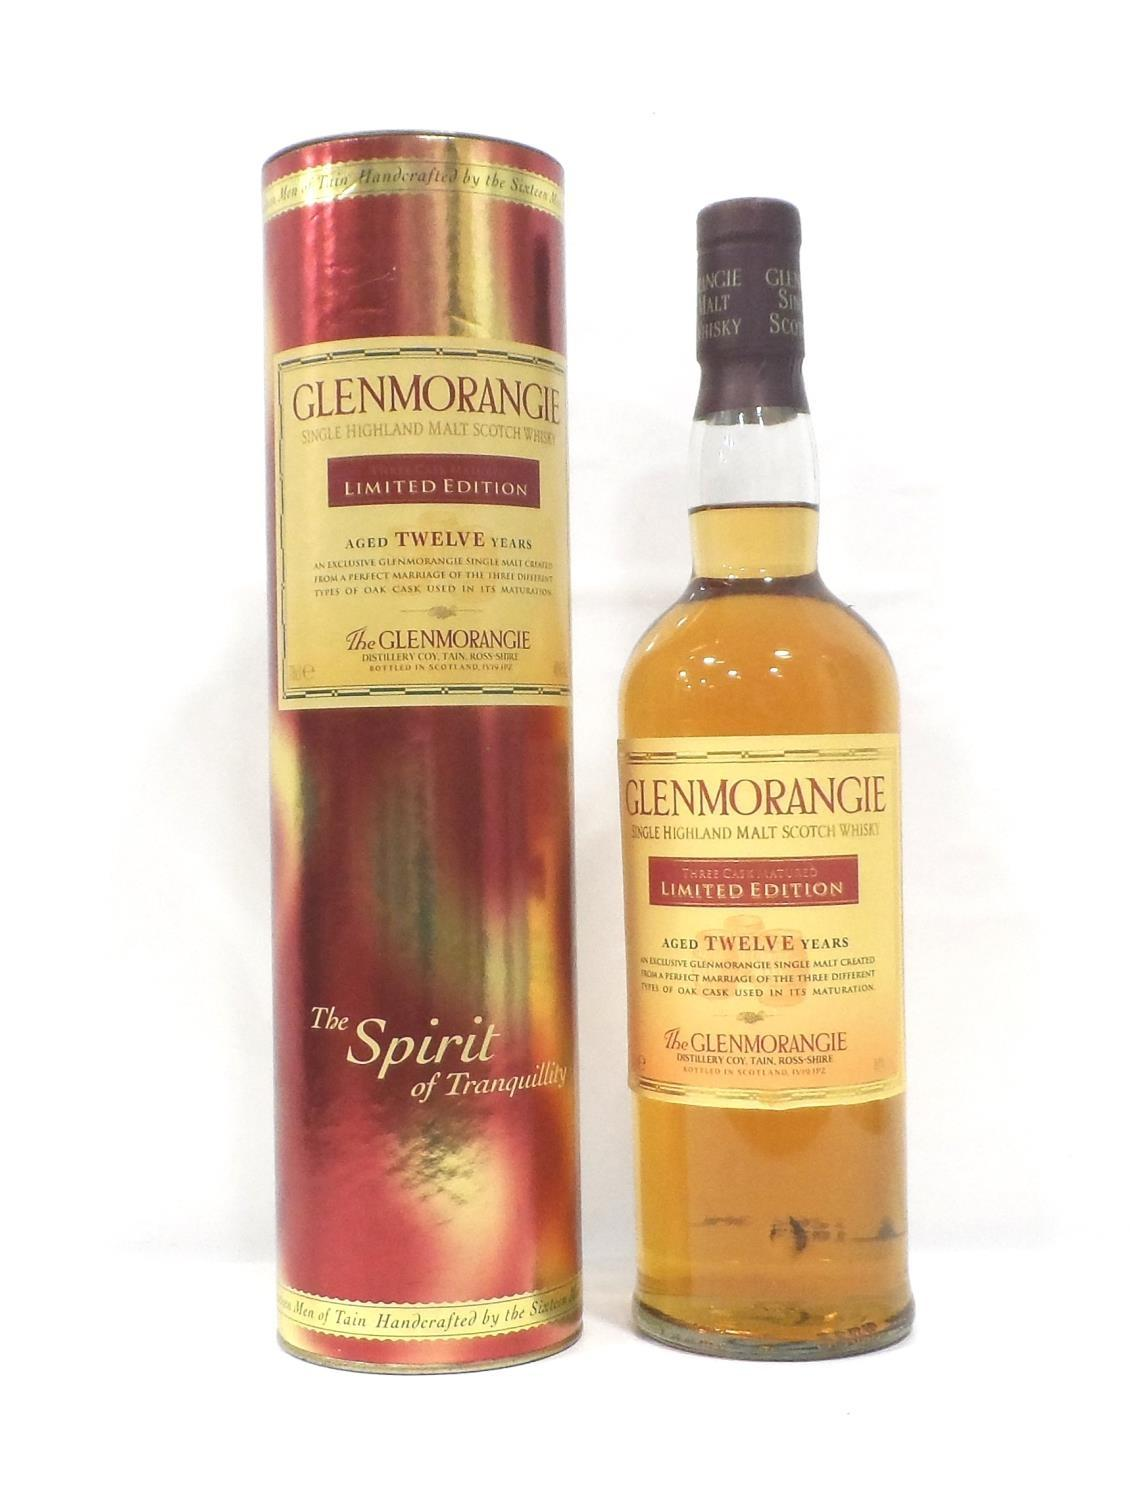 Lot 34 - GLENMORANGIE 12YO THREE CASK MATURED A Limited Edition bottling of the Glenmorangie 12 Year Old